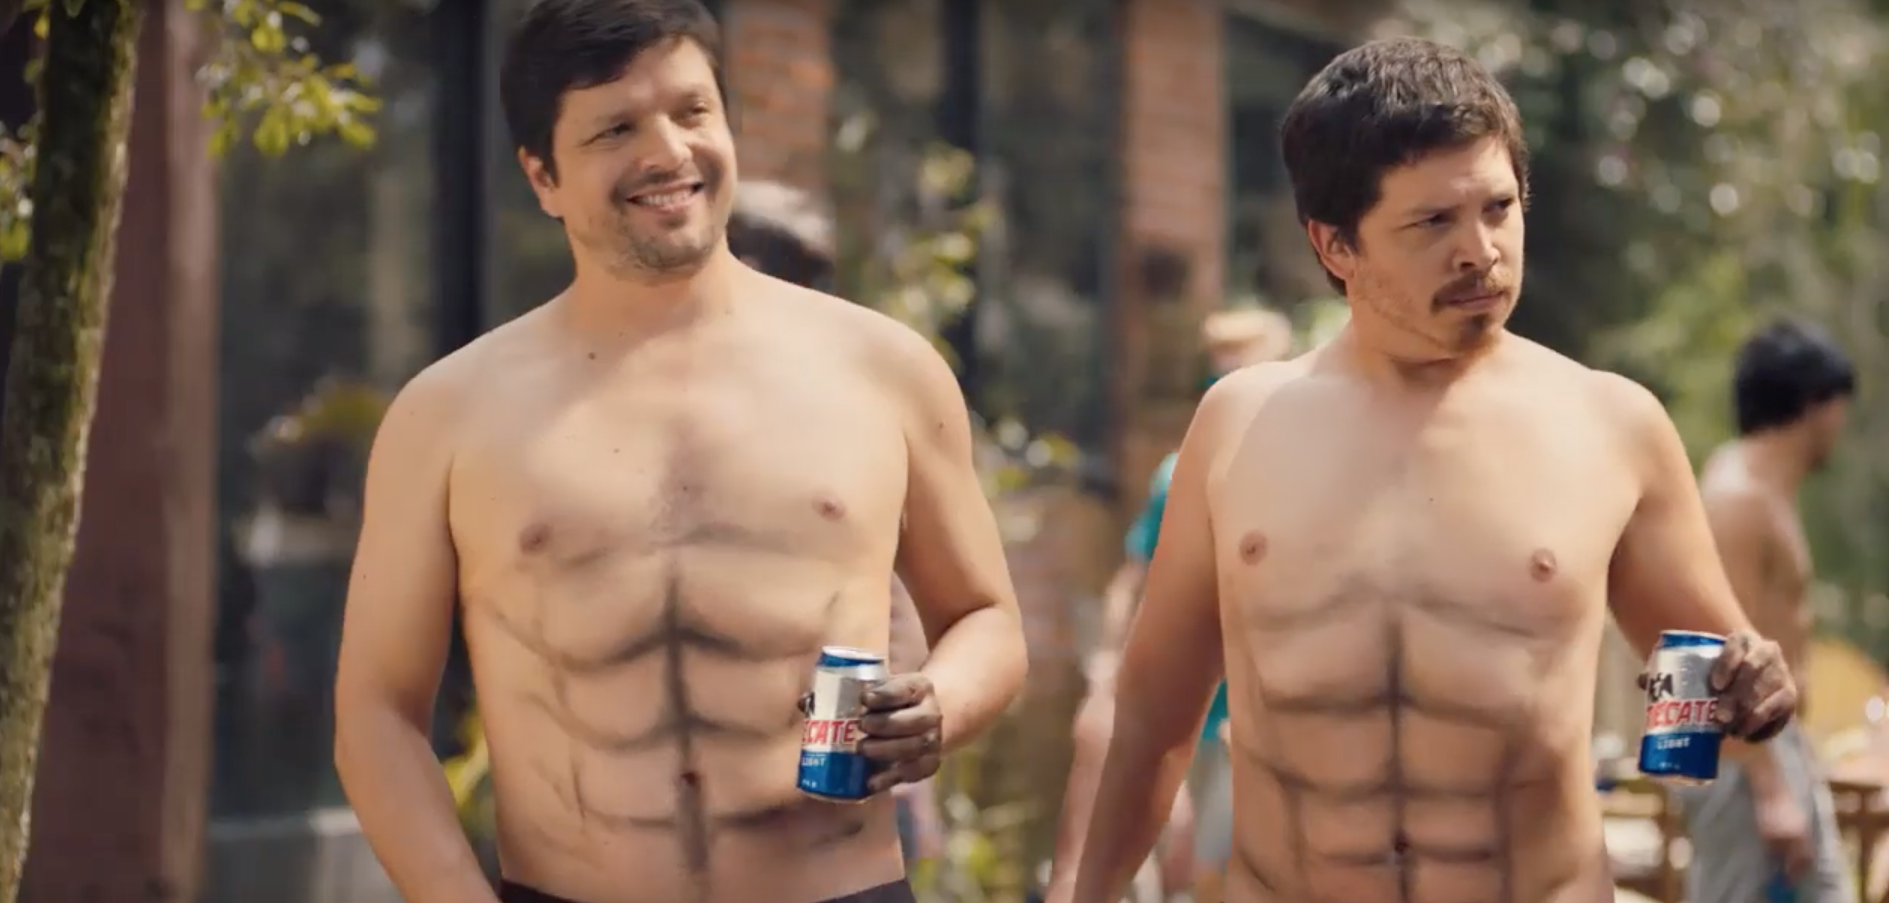 Check Out This Funny Ad From Beer-Makers Tecate